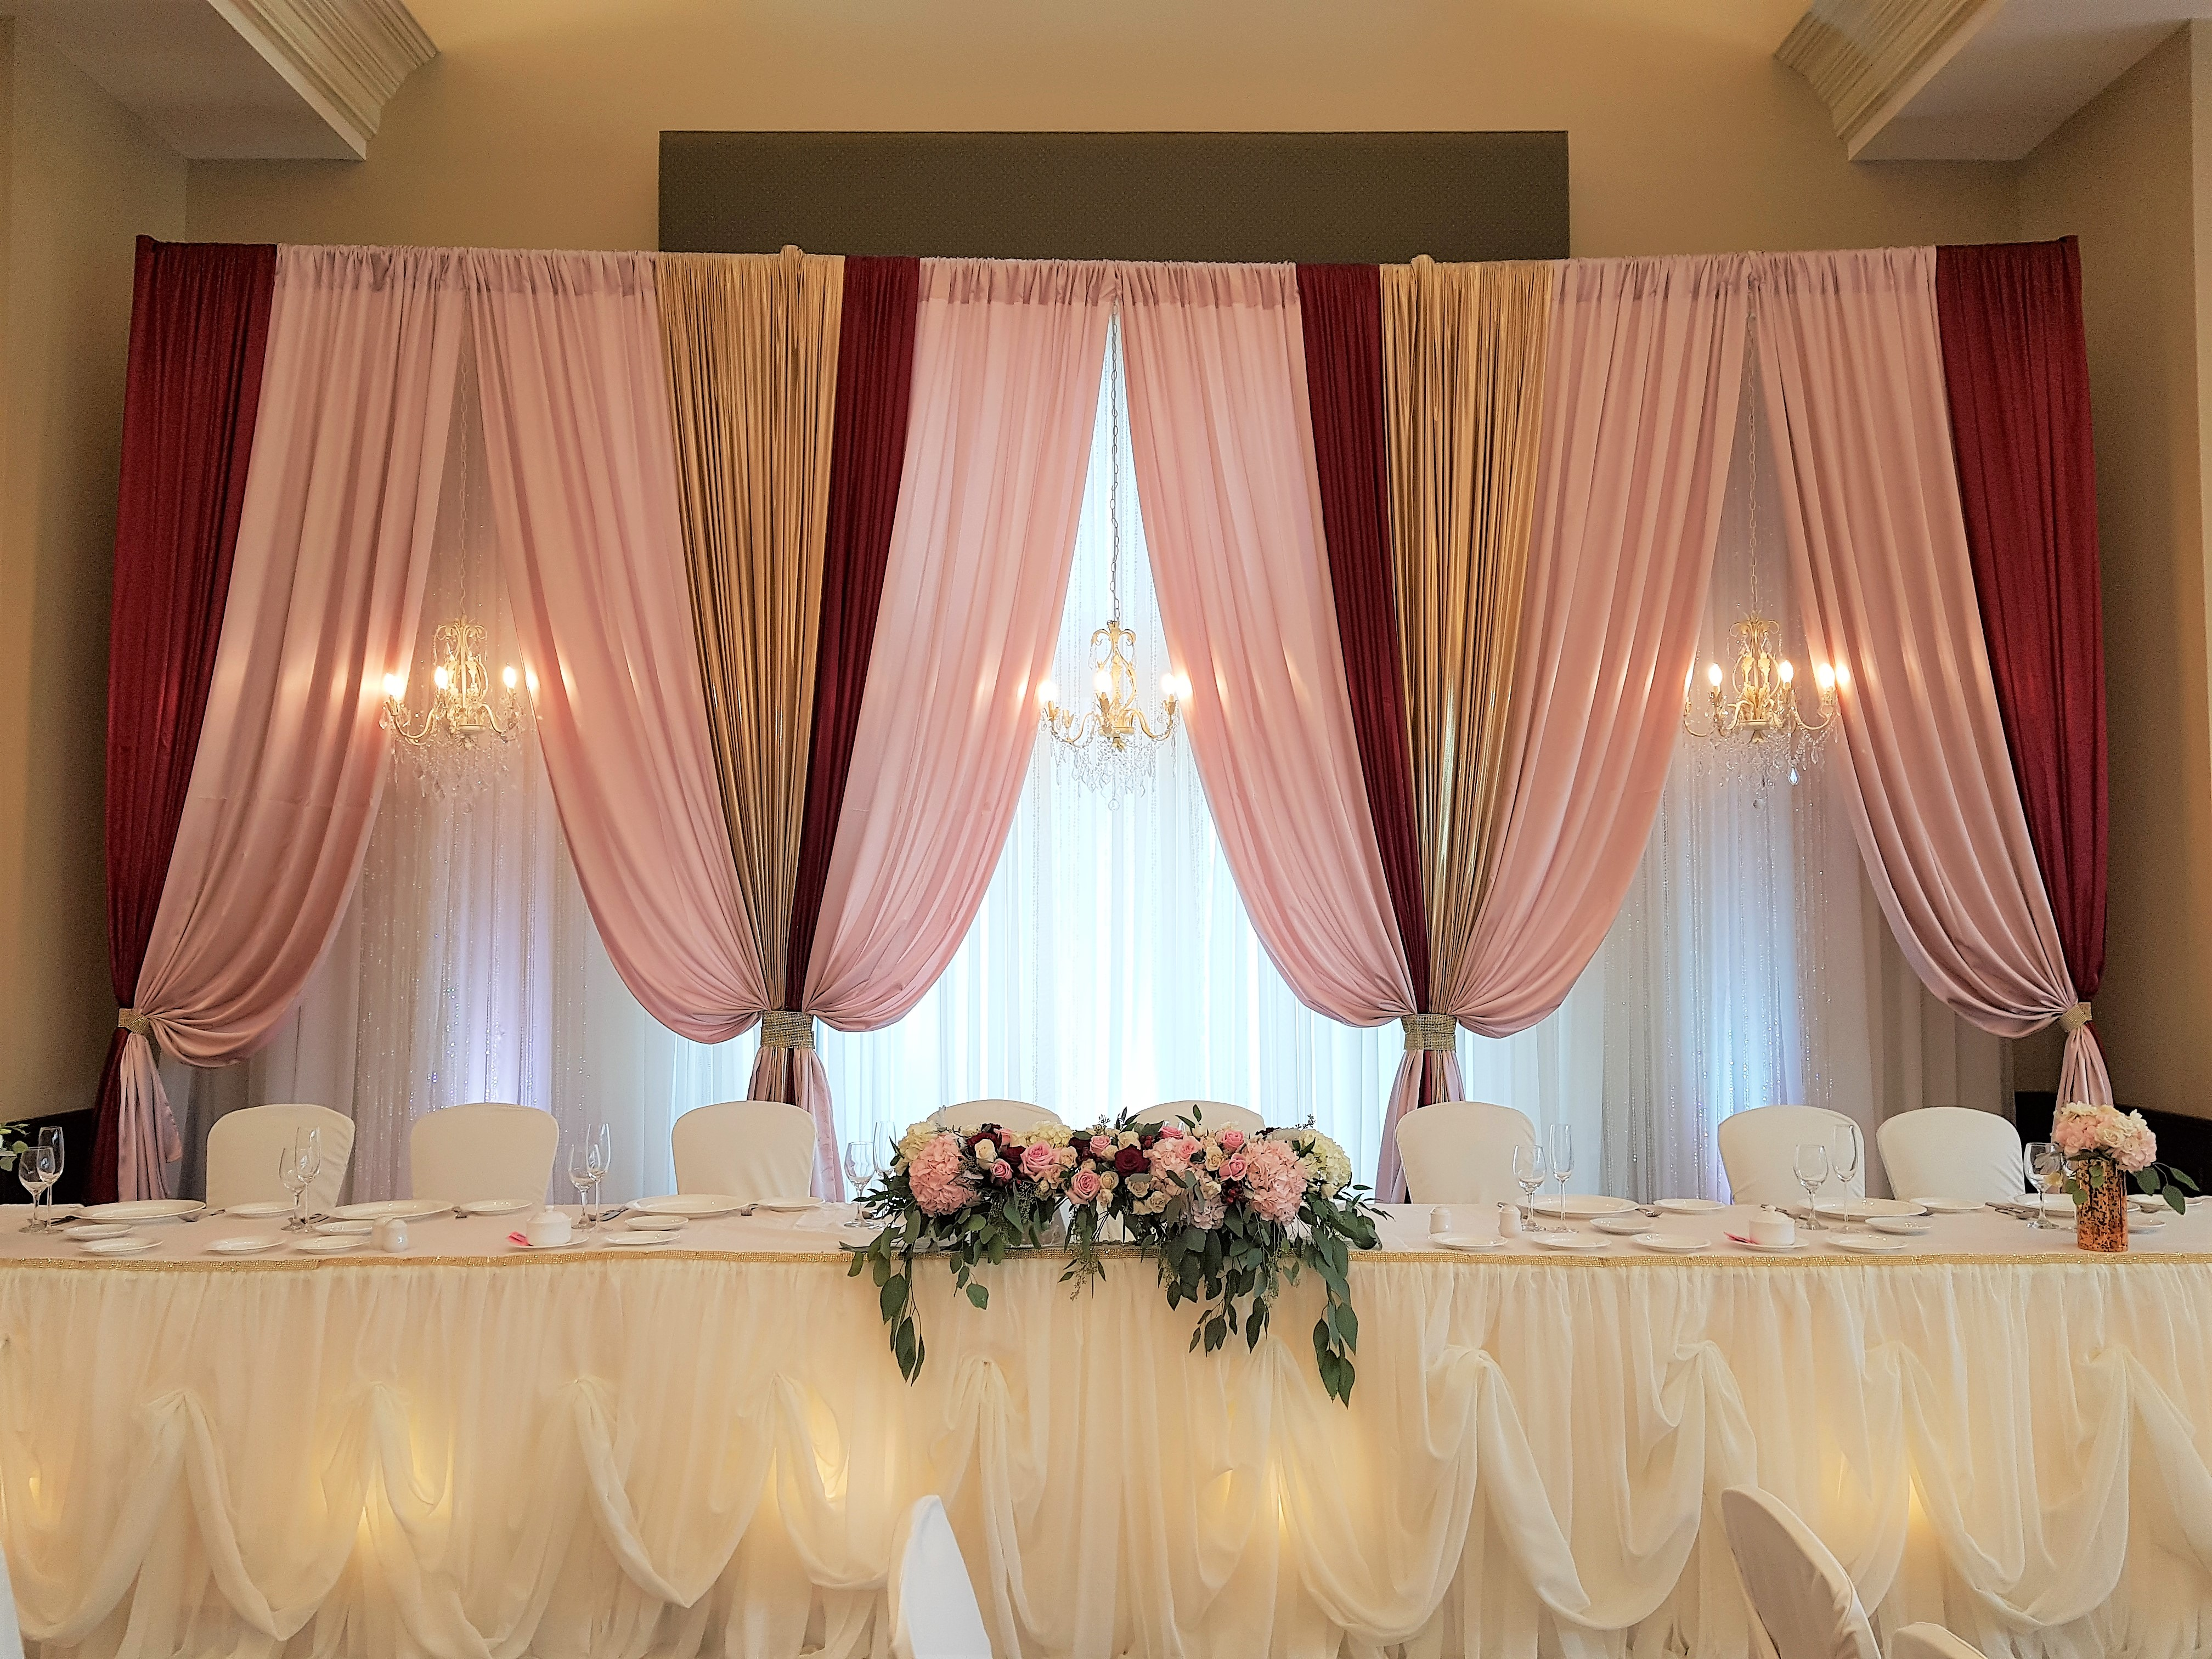 Custom Vertical Drape in Blush, Gold, Crimson with Chandeliers